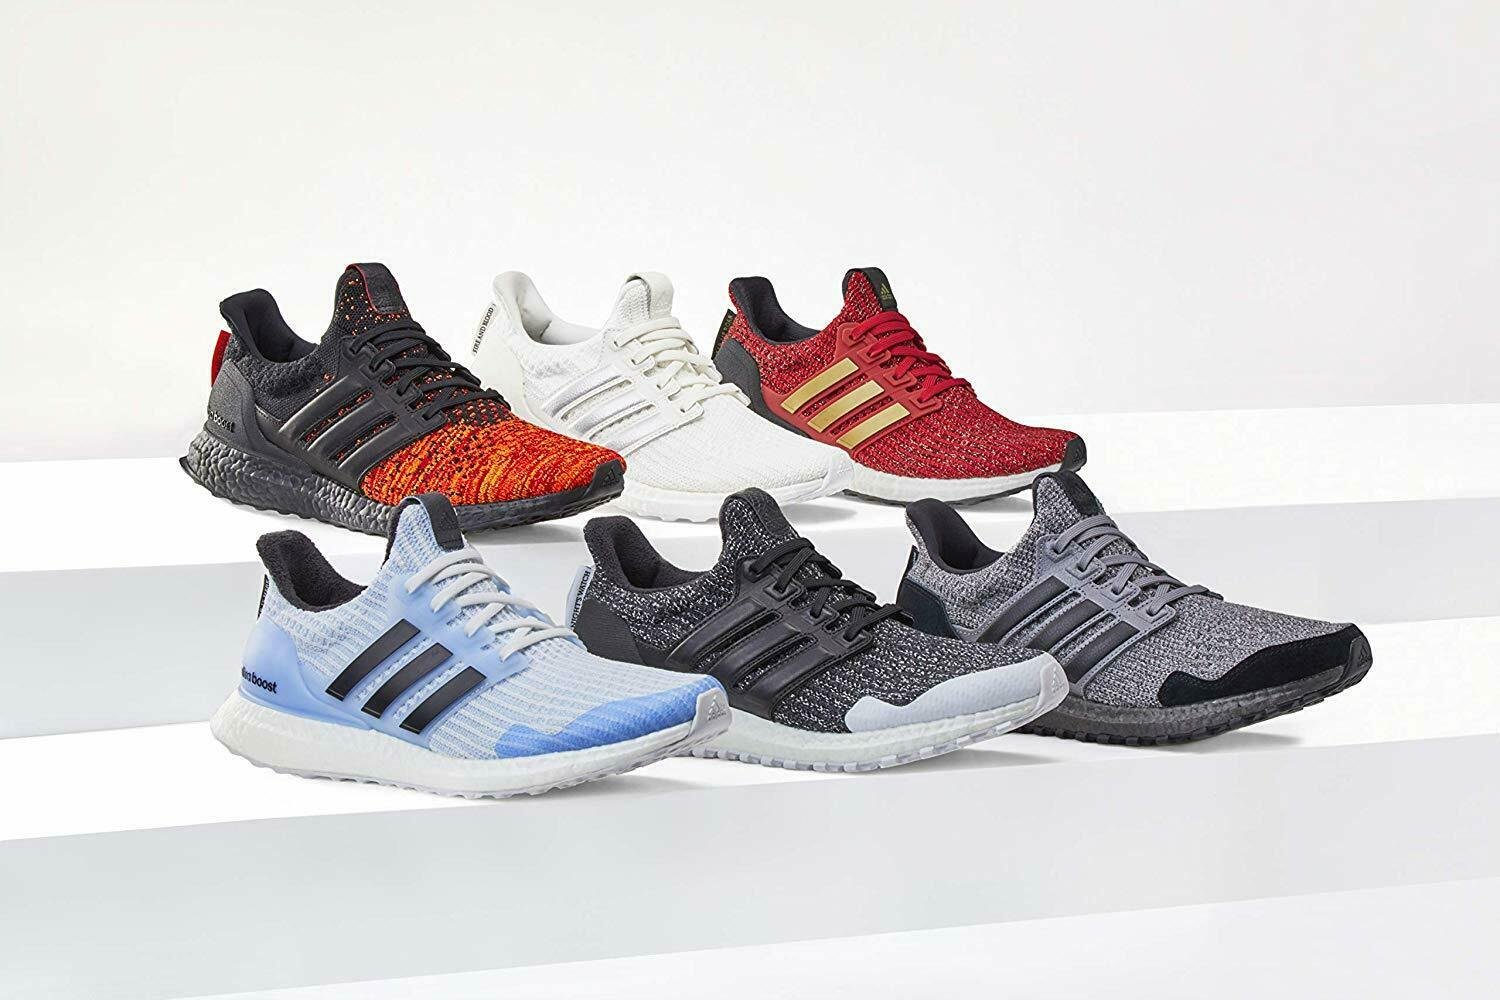 huge discount 60ba9 09606 Adidas x Game of Thrones Womens Ultraboost Running shoes Training Fit Gym  Run